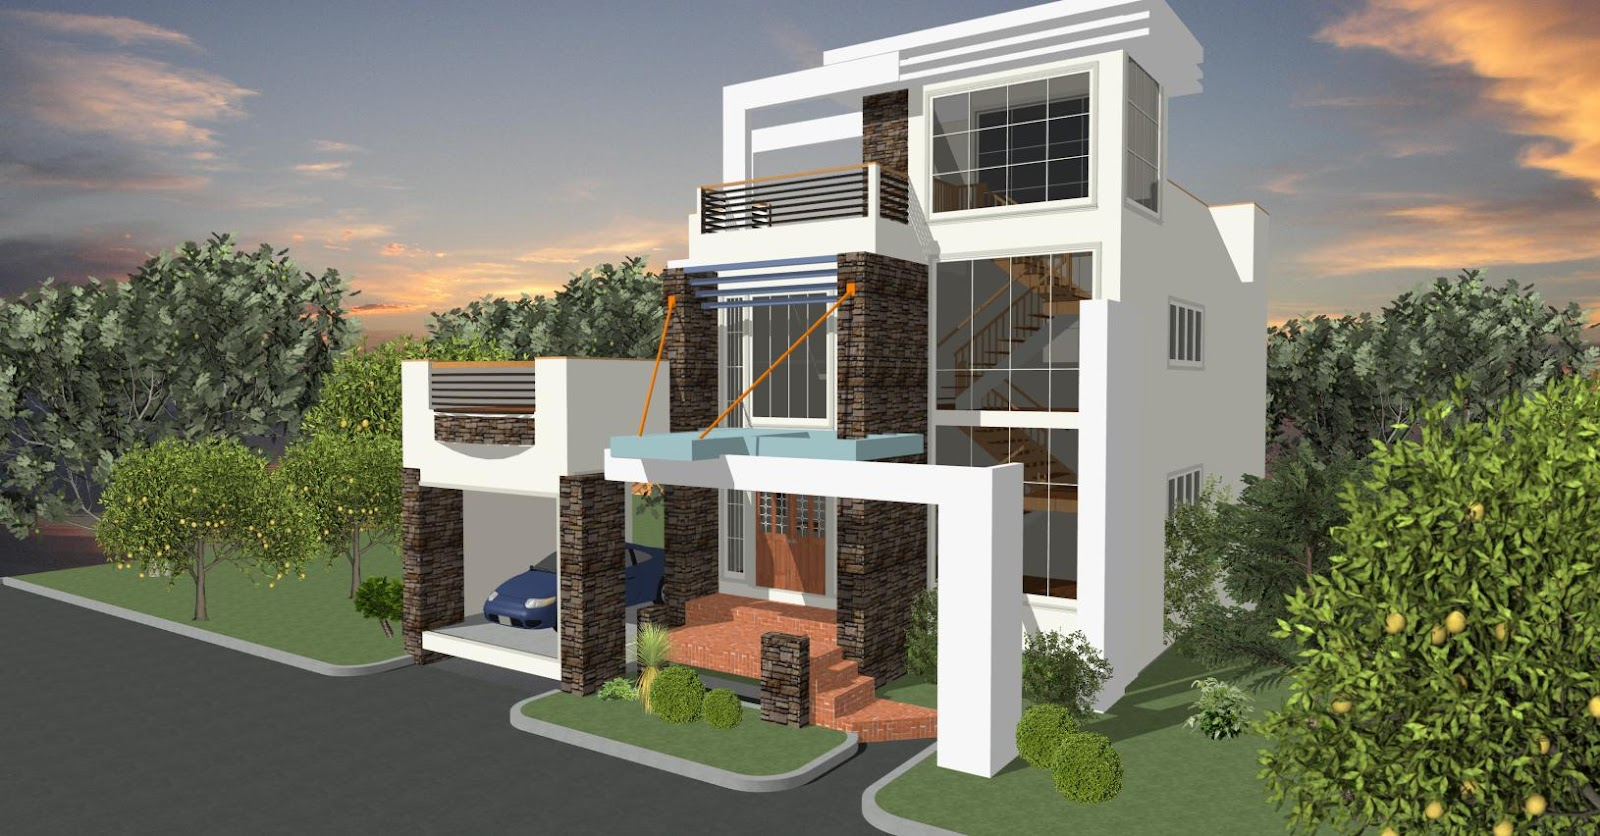 House designs in the philippines in iloilo by erecre group for House models and plans